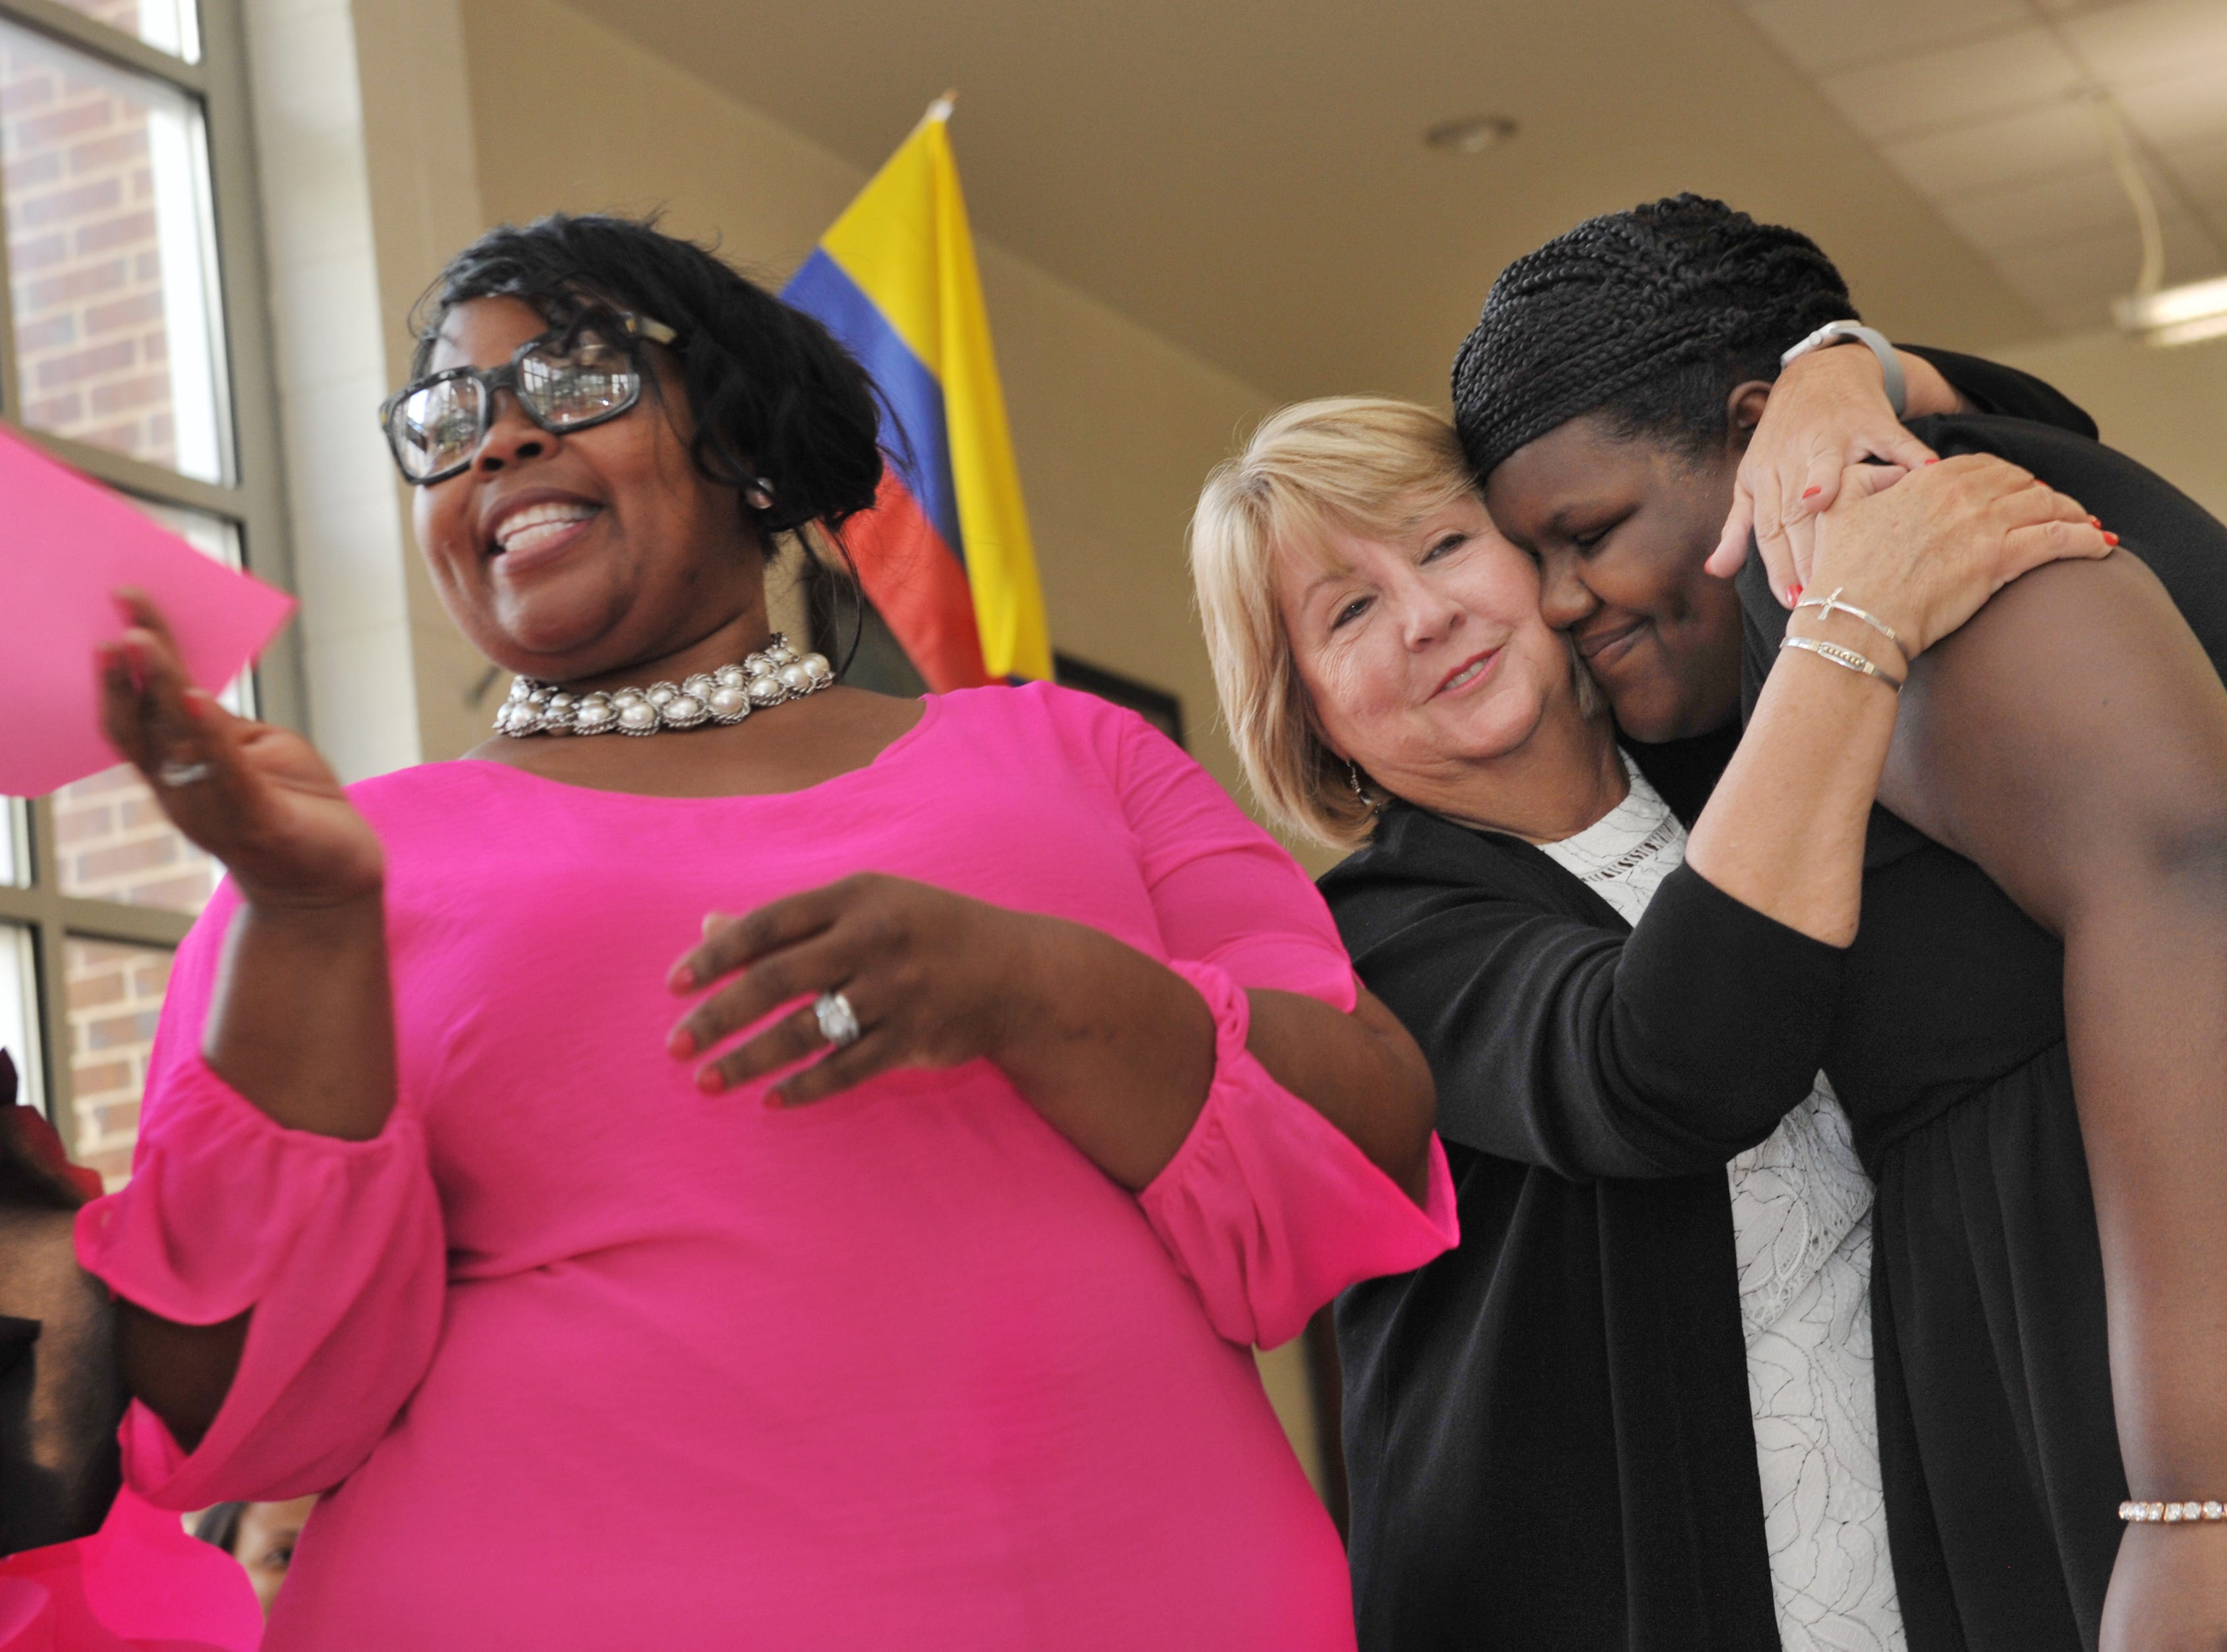 As Karen Goodman, from left, cosponsor of Highland Elementary Girls with Purpose Club, gets ready to hand out the next active membership certificate, Mississippi First Lady Deborah Bryant gives Highland Elementary 5th grader D'Kirah Stribling, 10, a hug during the Girls with Purpose Club Mother-Daughter Tea at the Ridgeland school.